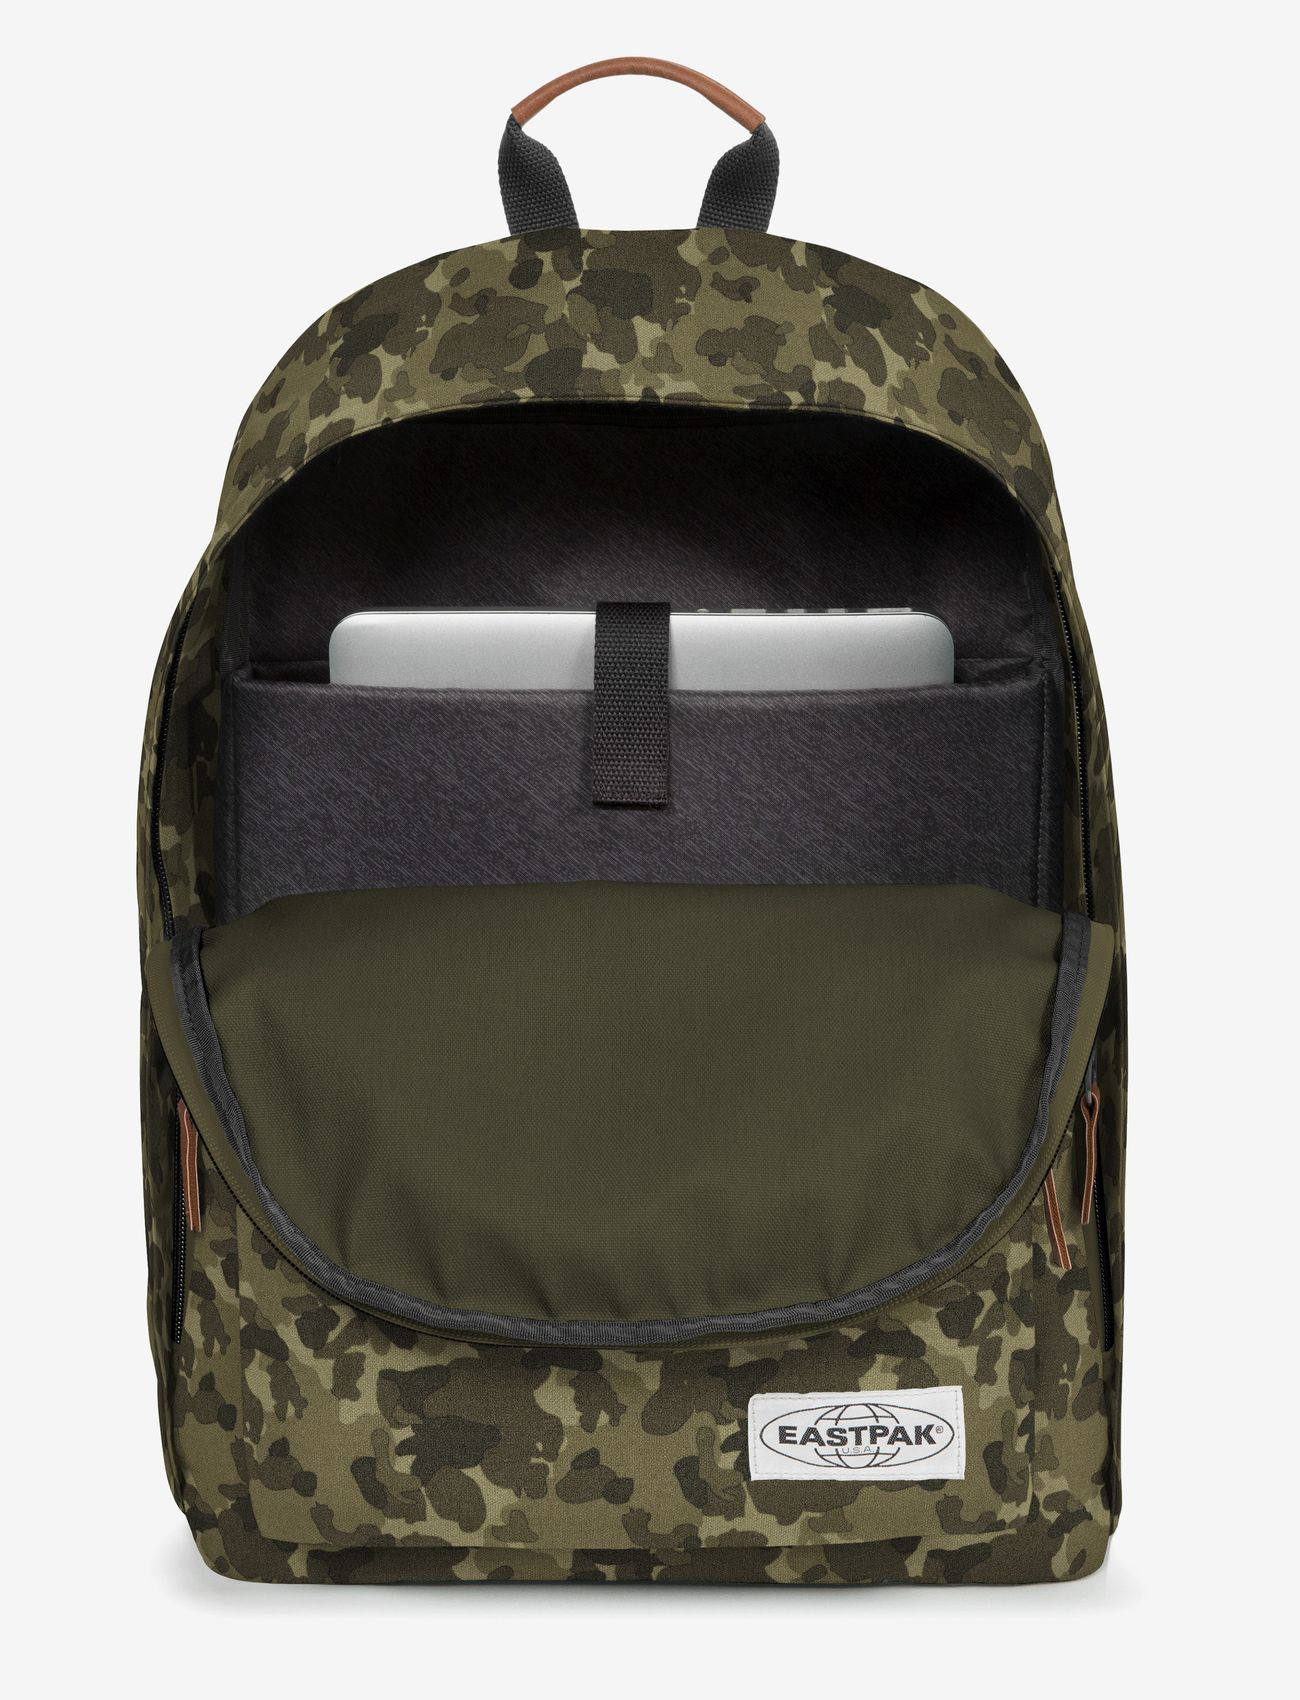 Eastpak - OUT OF OFFICE - rucksäcke - opgrade camo - 1